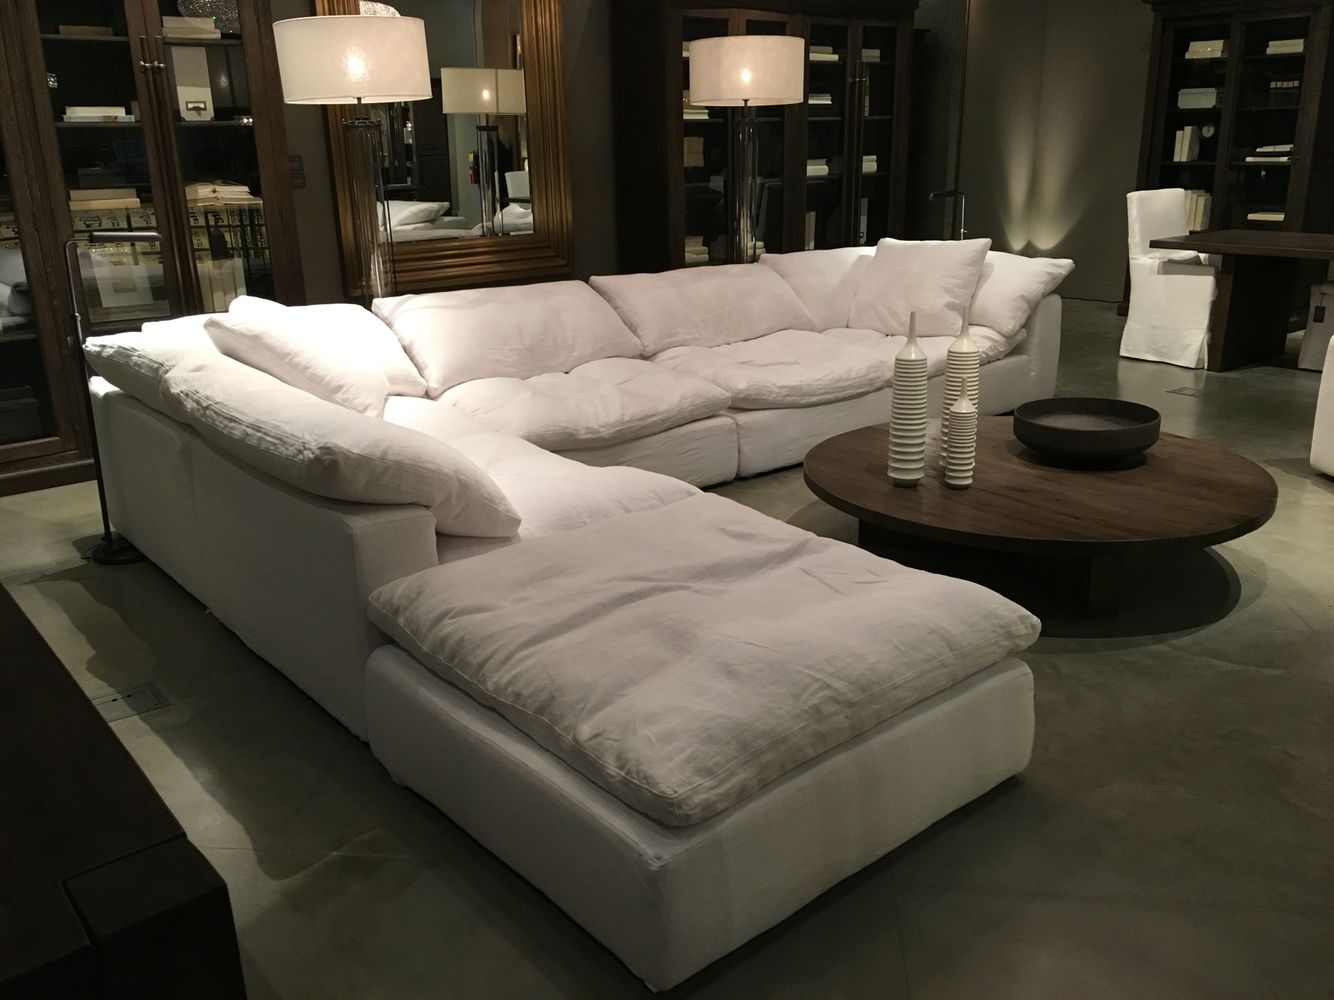 Restoration hardware sectional cloud couch future for Living room ideas 2 couches